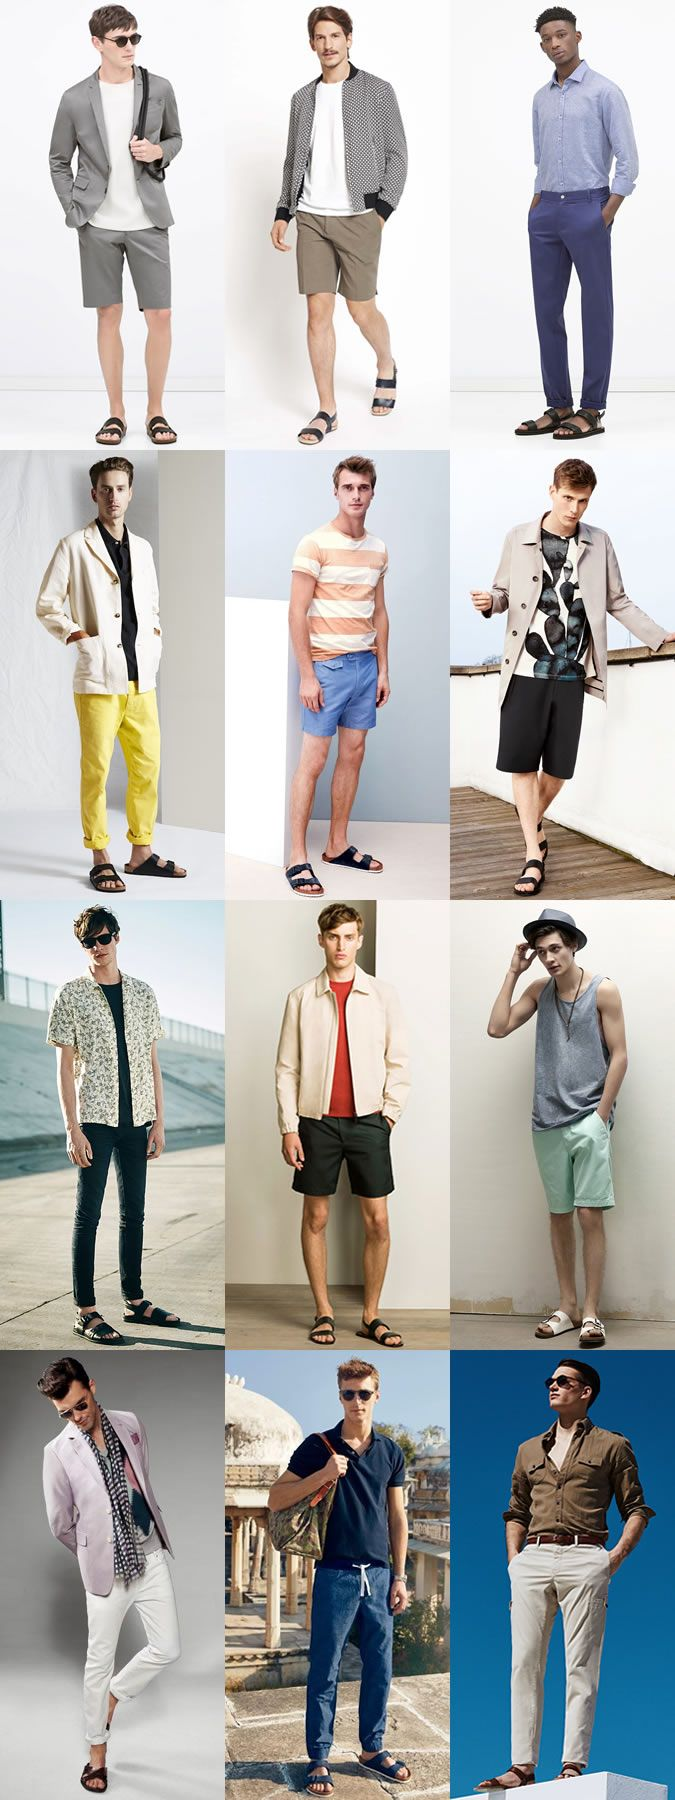 Men's Summer Style: Sandals Outfit Inspiration Lookbook